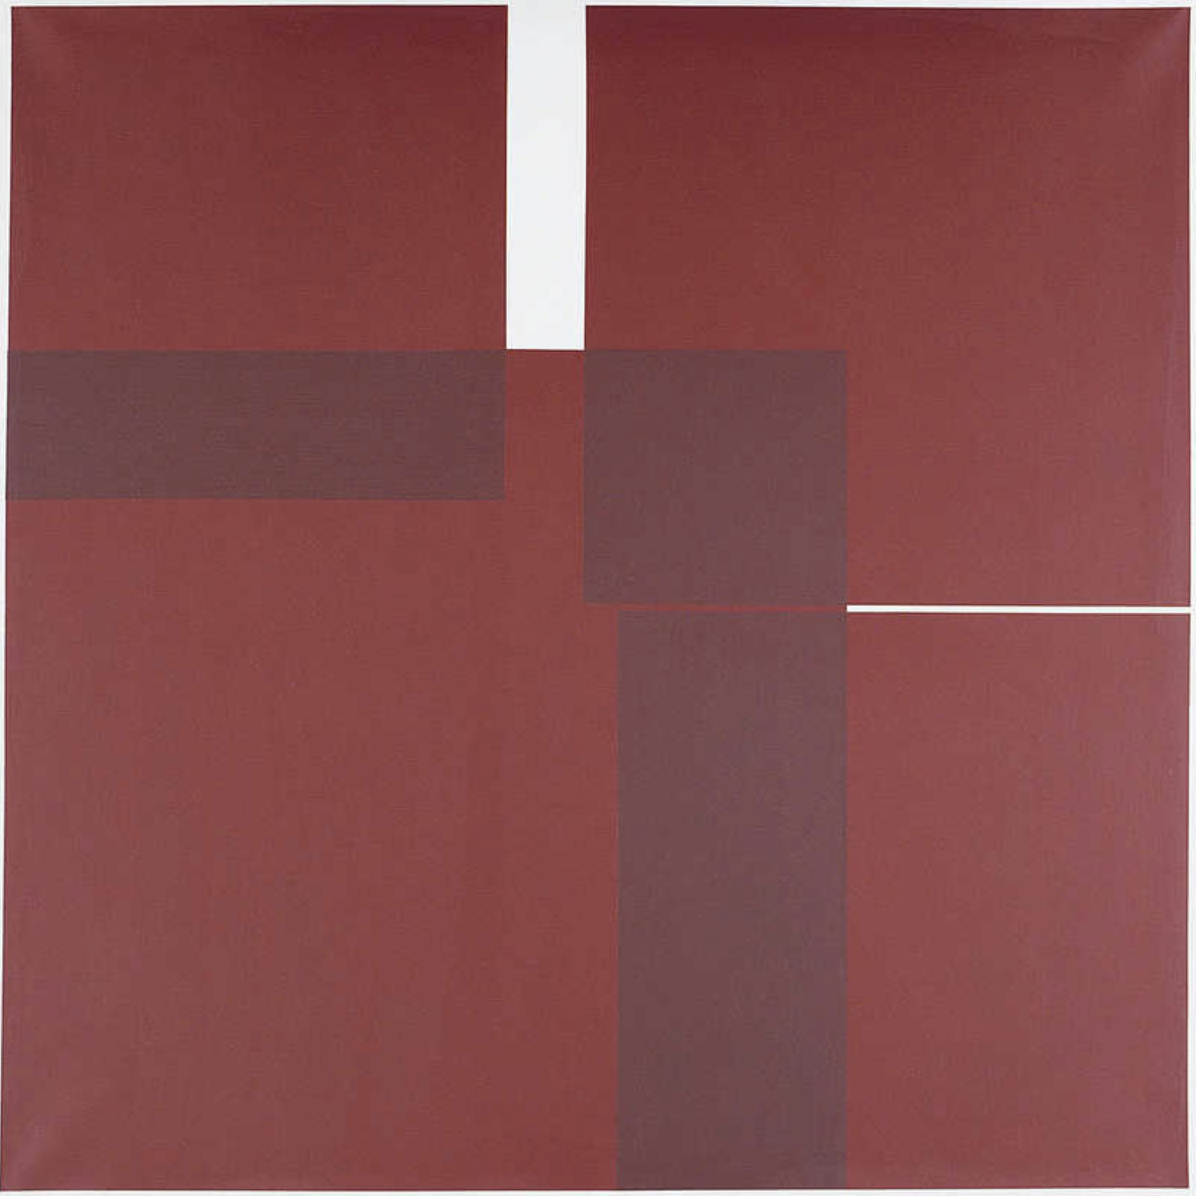 Vera Molnar, Quatre carrés, acrylic on canvas,